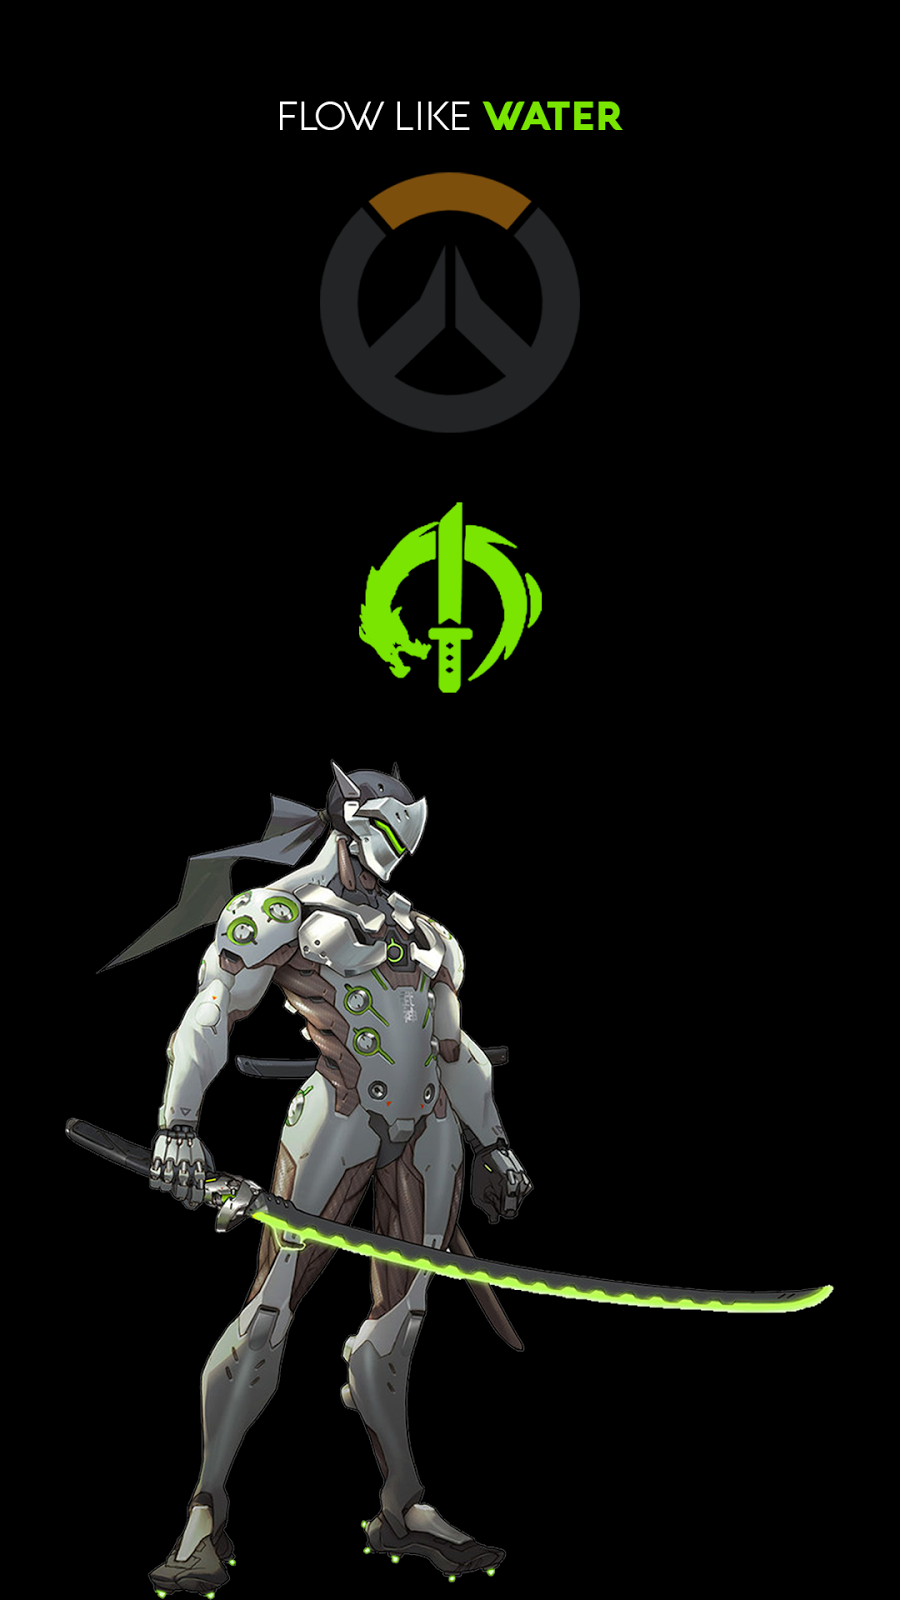 Overwatch Wallpapers for Phones